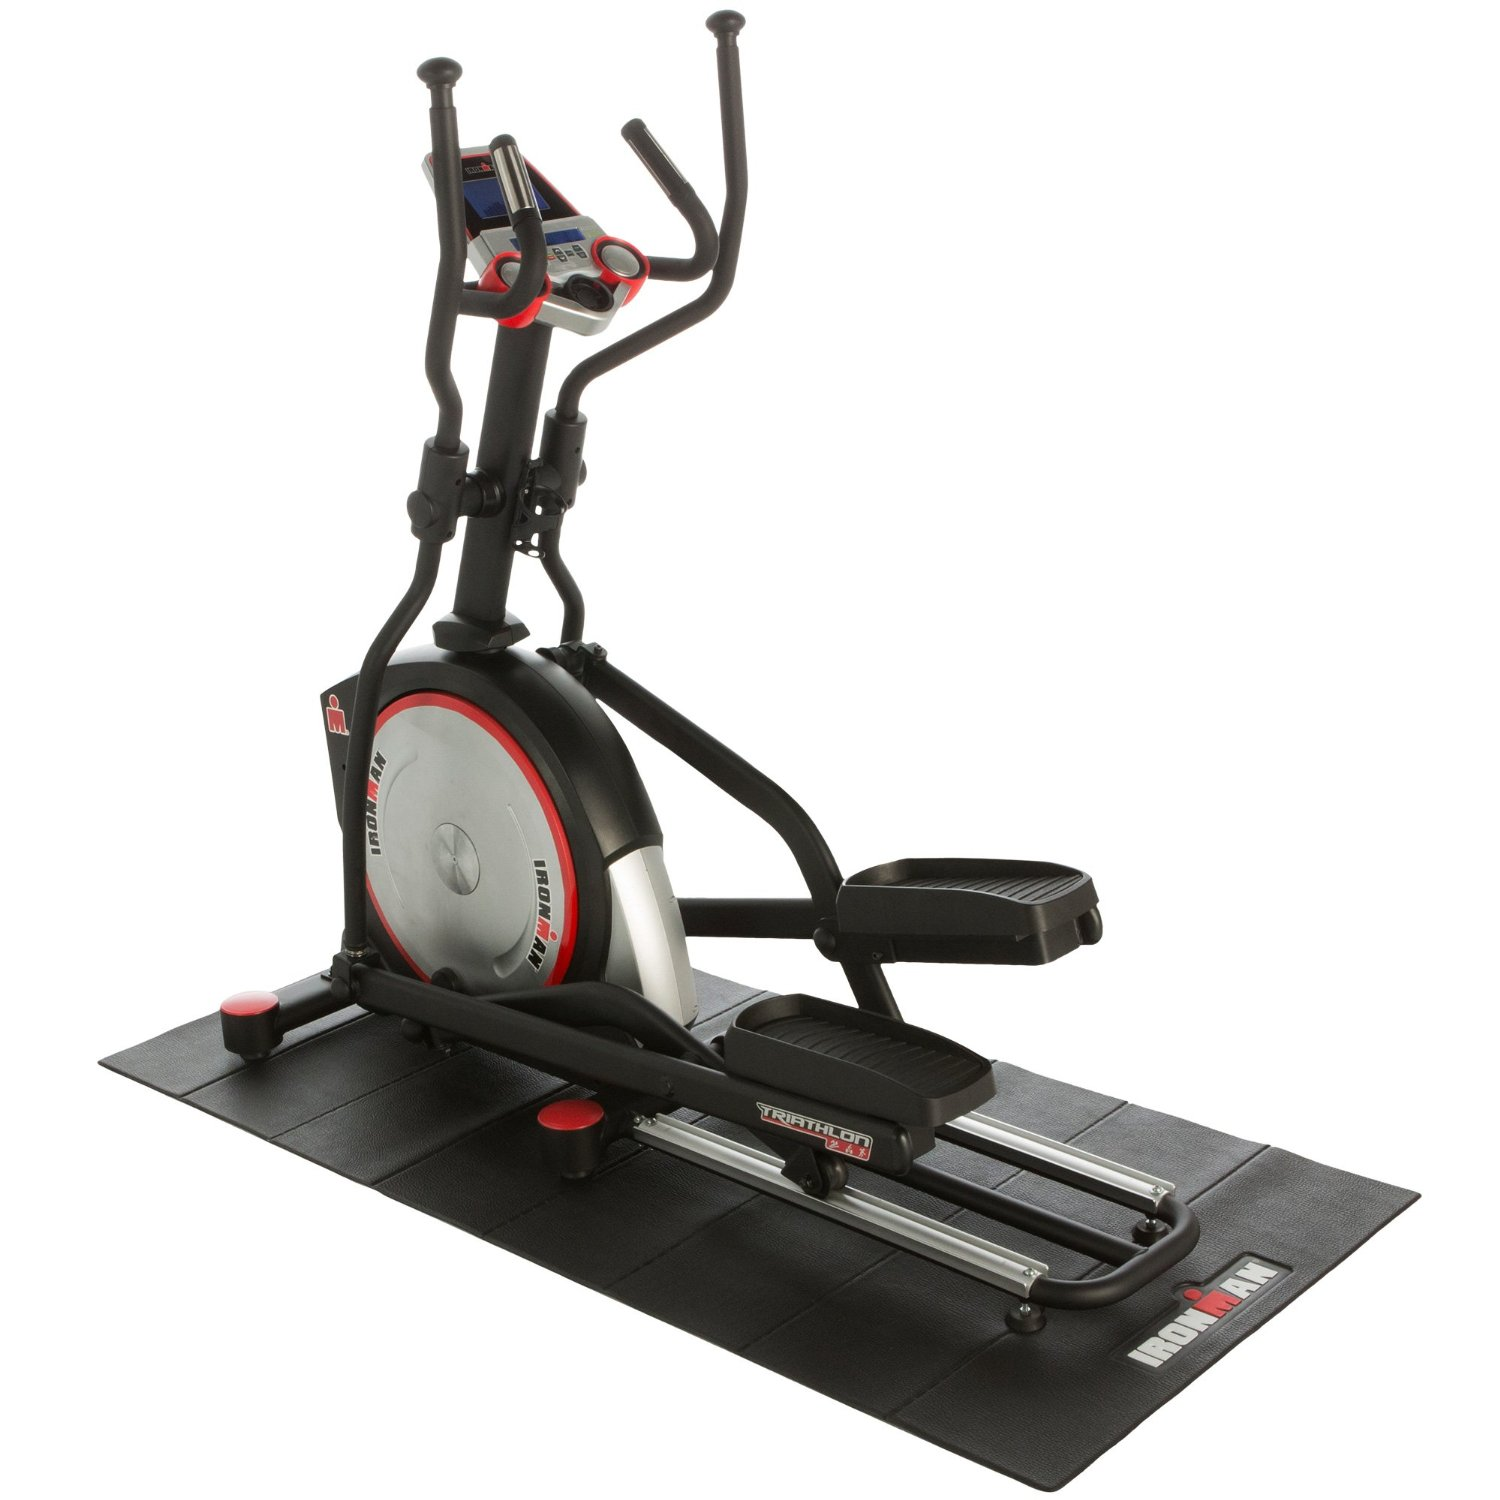 An Ironman Elliptical Is Built For Endurance And